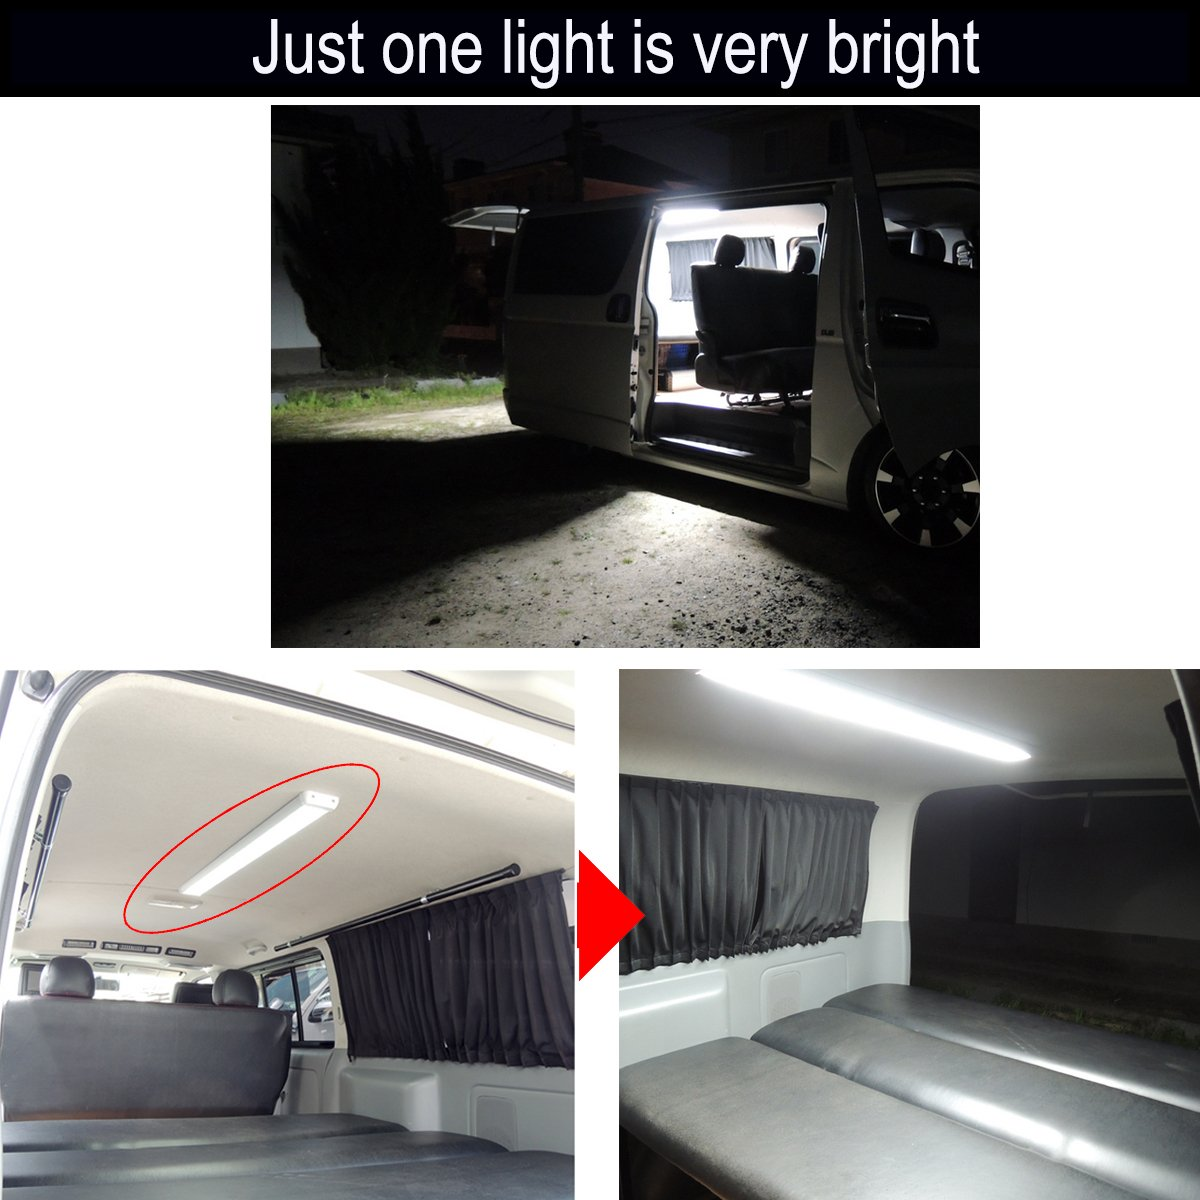 lightronic 41.8 Inches 60W LED Interior Dome Light Fixture Fit for RV, UTV and Boats by lightronic (Image #2)